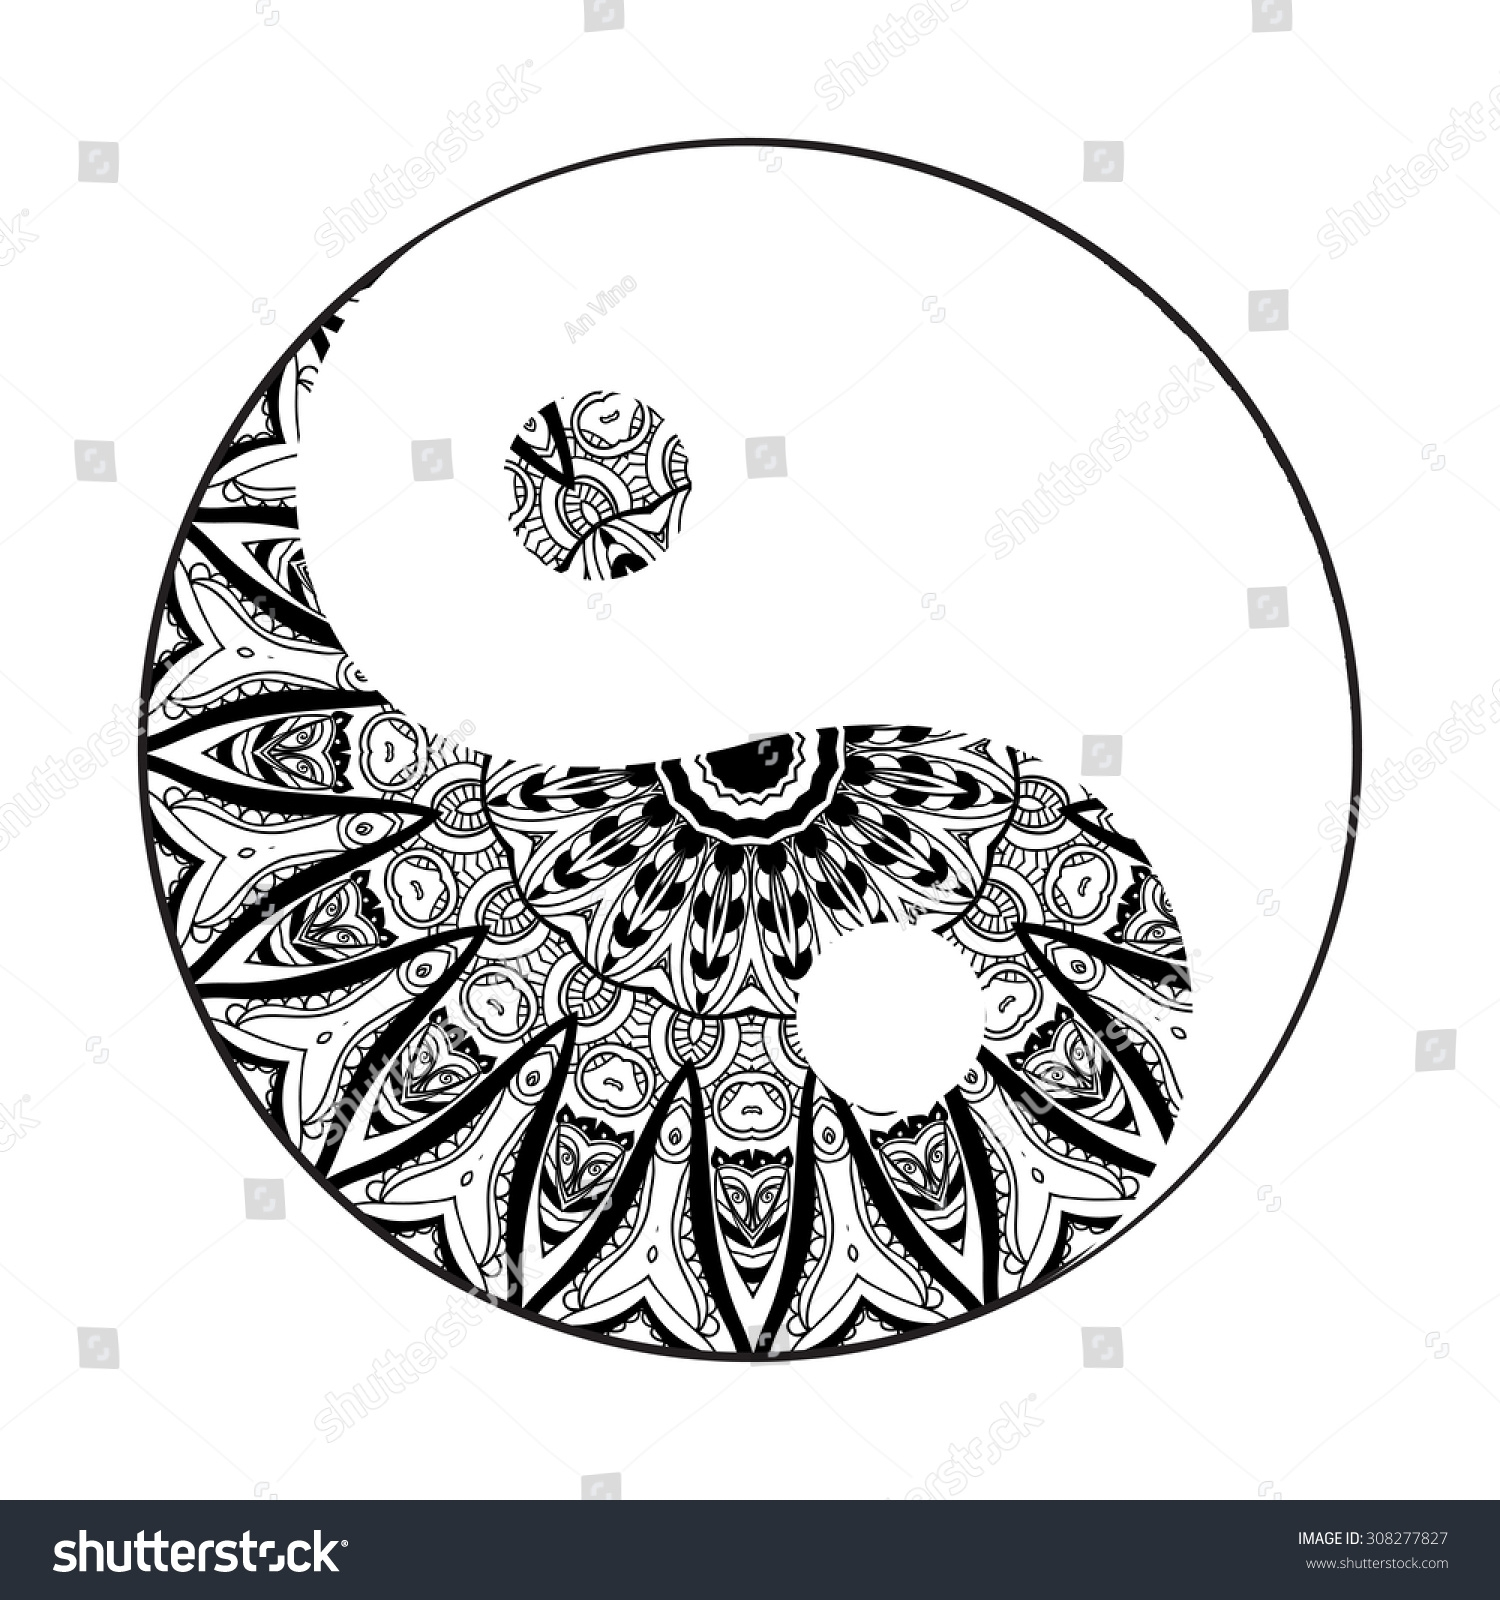 coloring pages for 10 year olds - stock vector ornament card with mandala yin yang geometric circle element made in vector perfect cards for